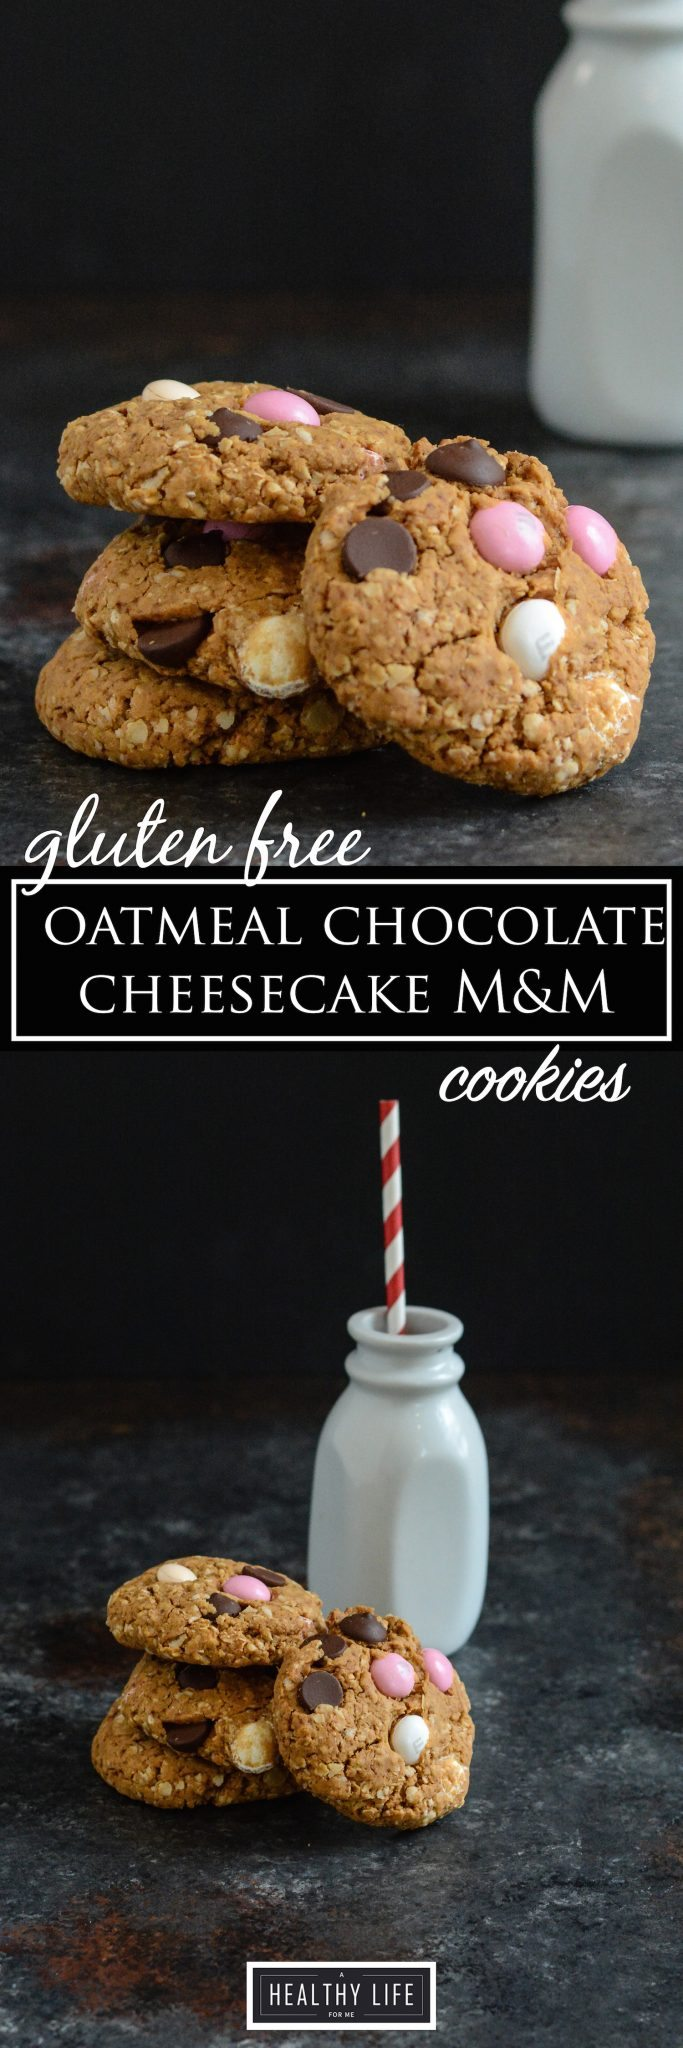 Oatmeal Chocolate Cheesecake M&M Cookie Recipe | ahalthylifeforme.com